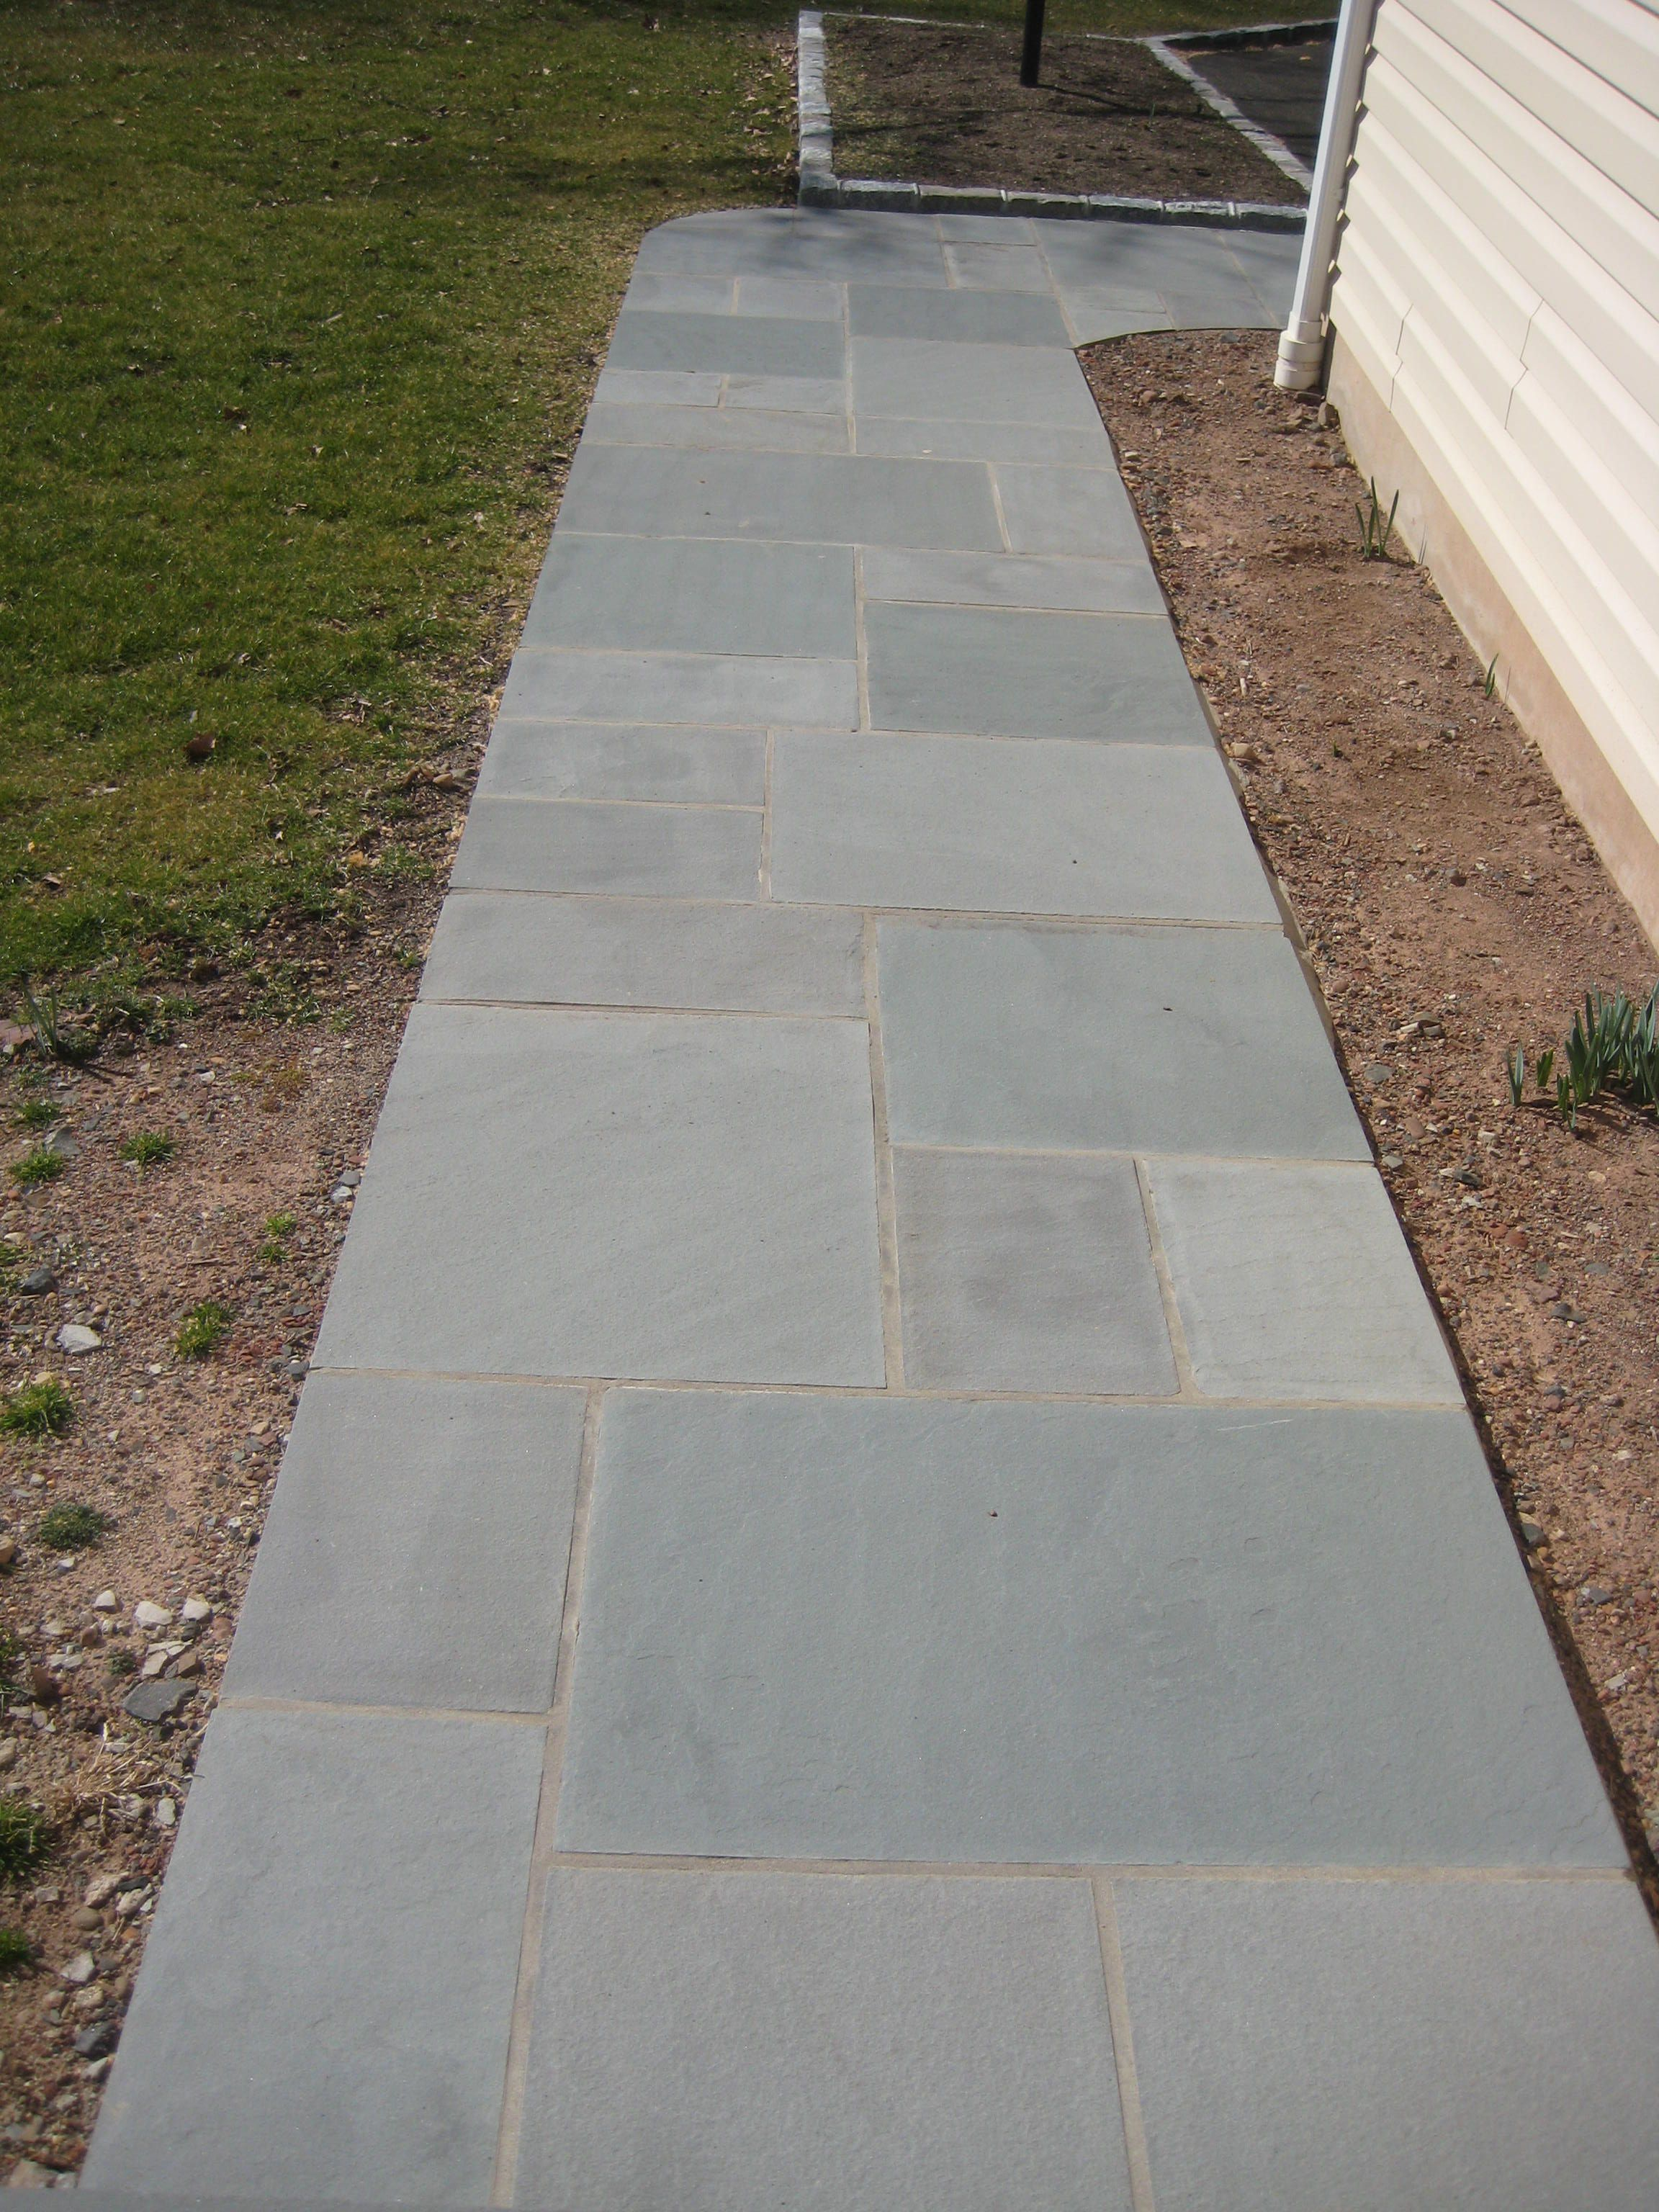 Exciting Bluestone Pavers For Best Natural Stone Flooring